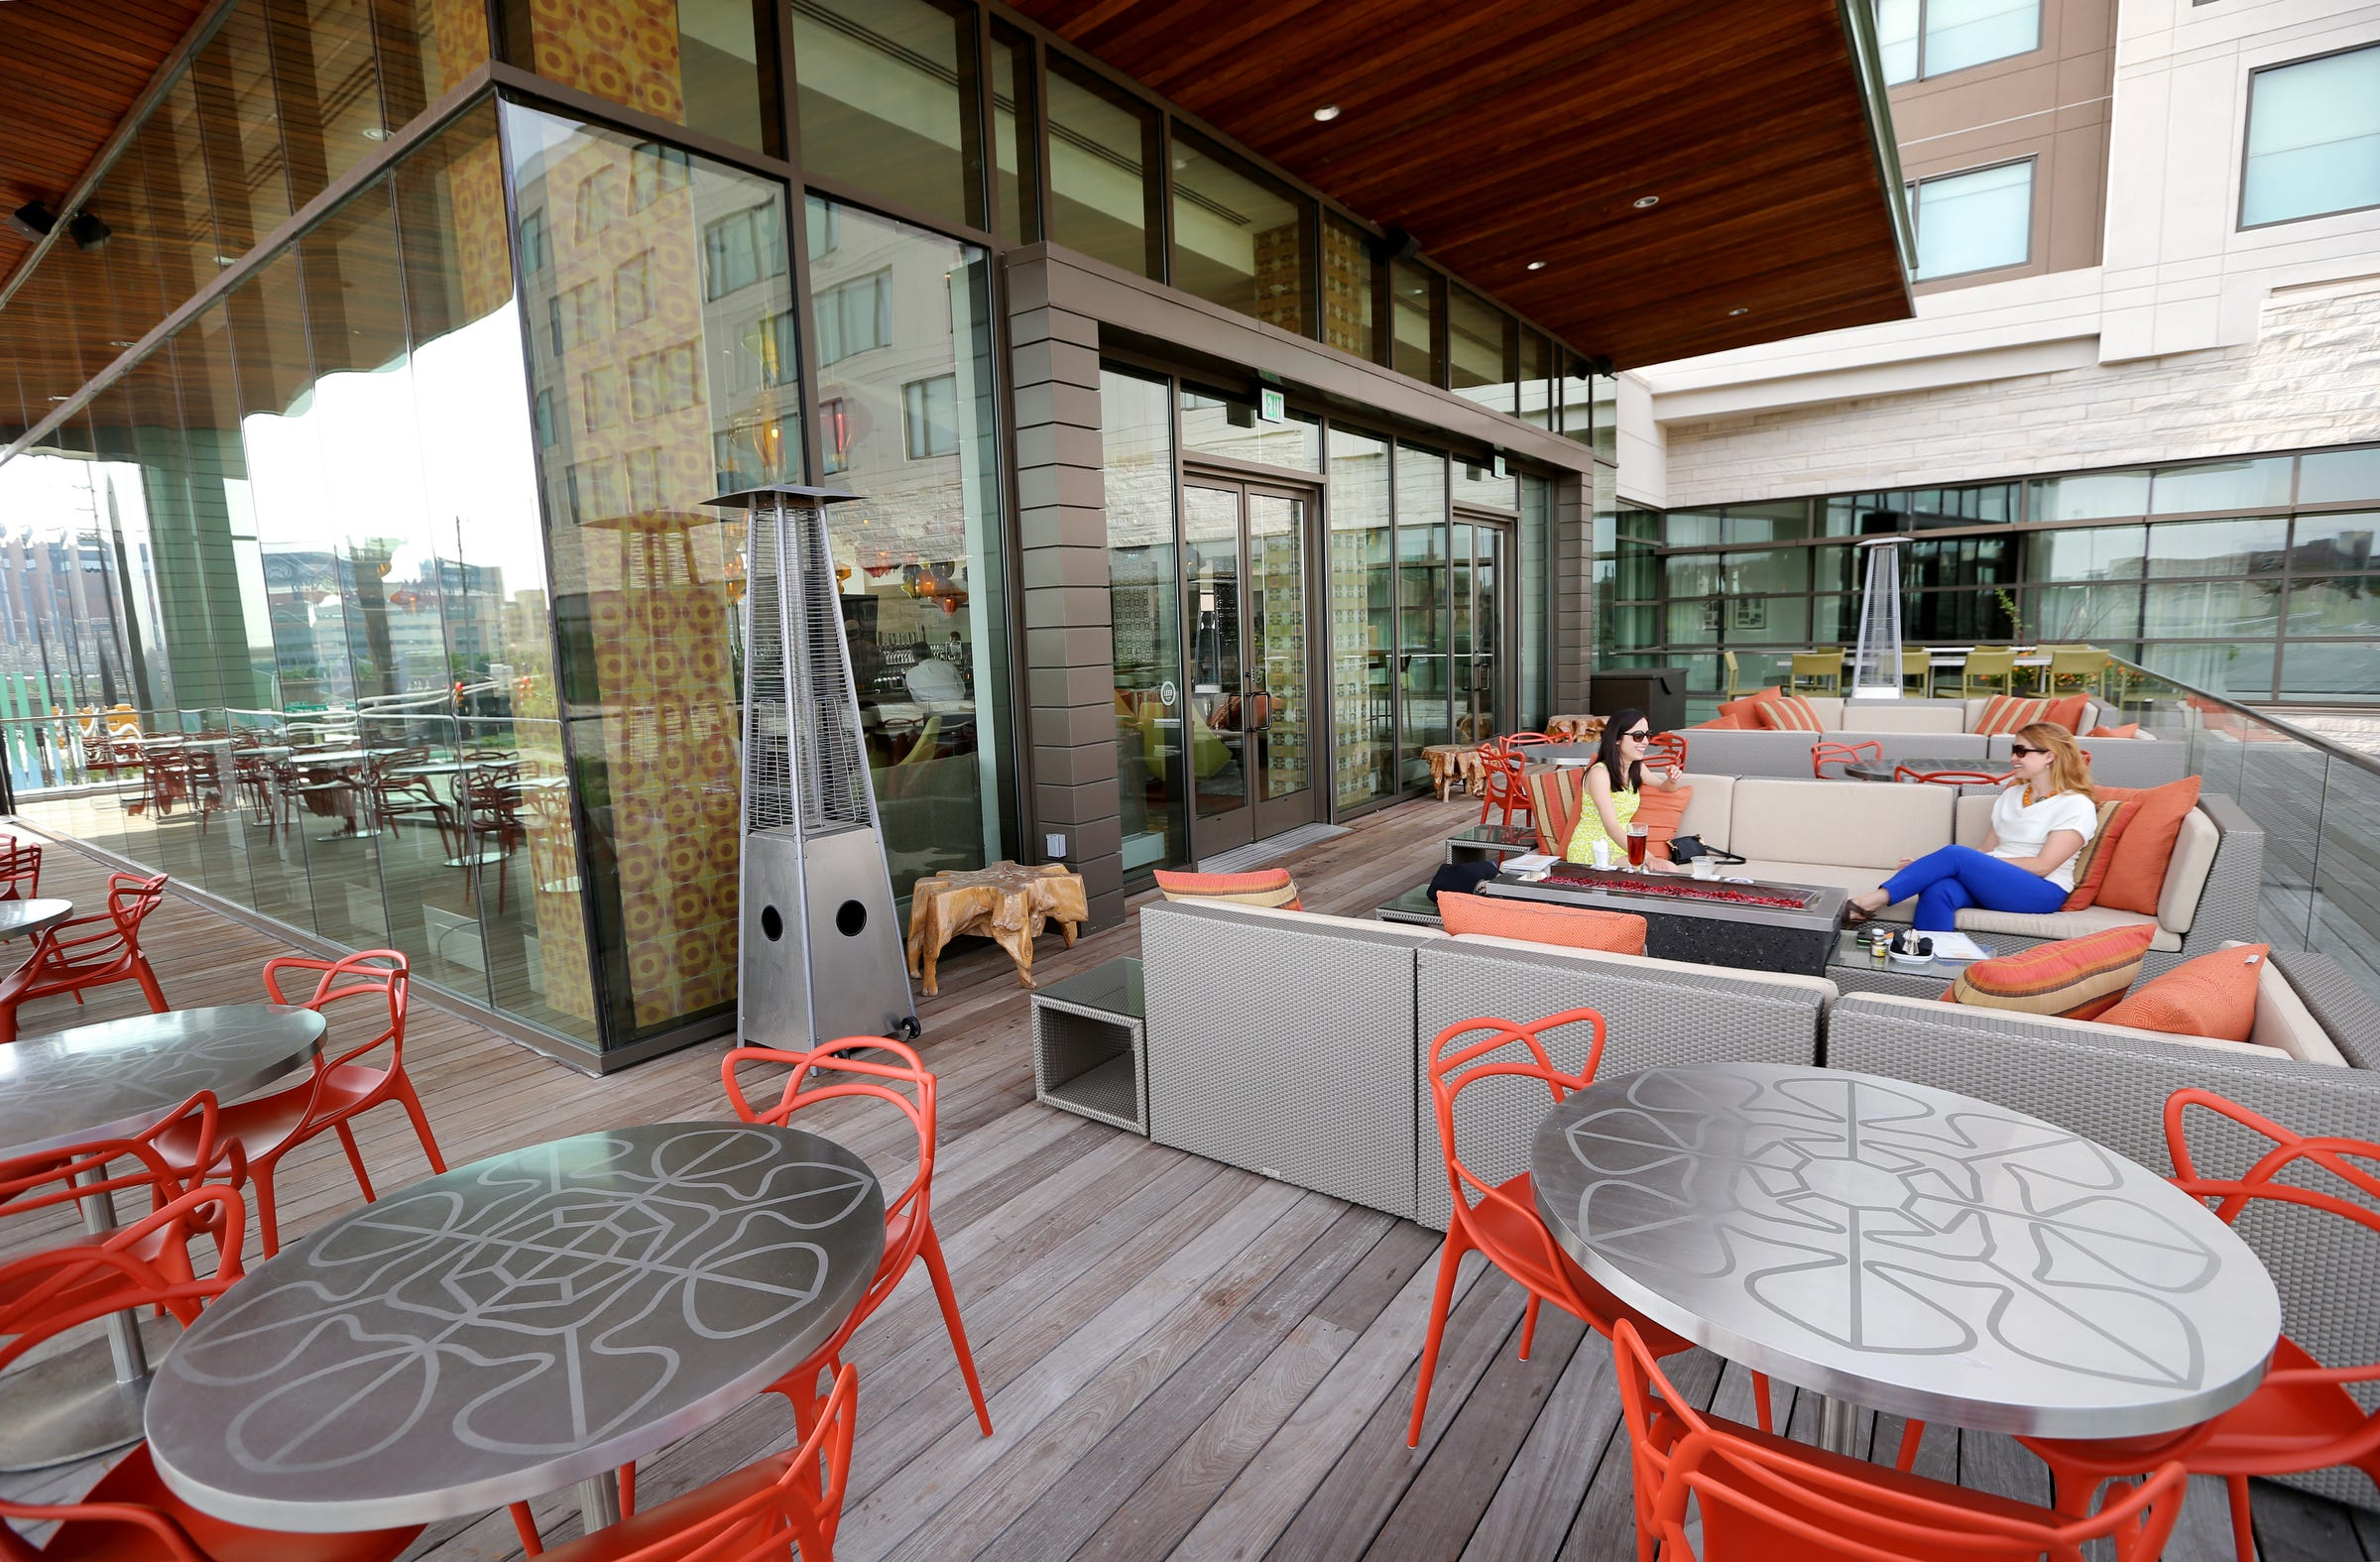 Restaurants with outdoor seating in Indianapolis